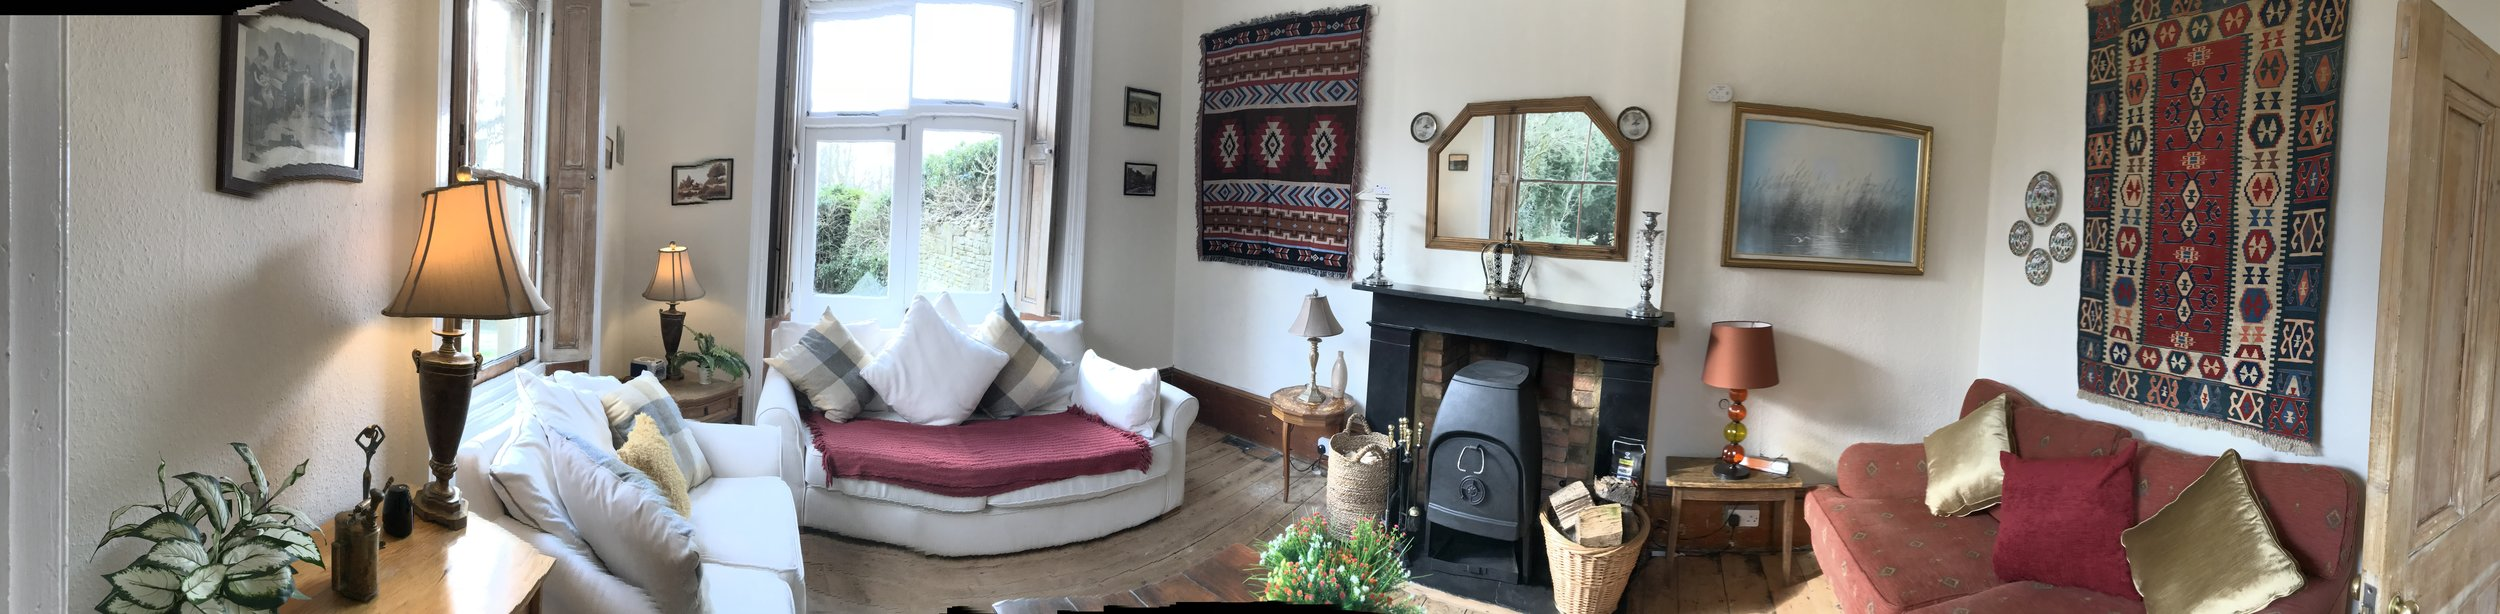 DRAWING ROOM PANO.jpg